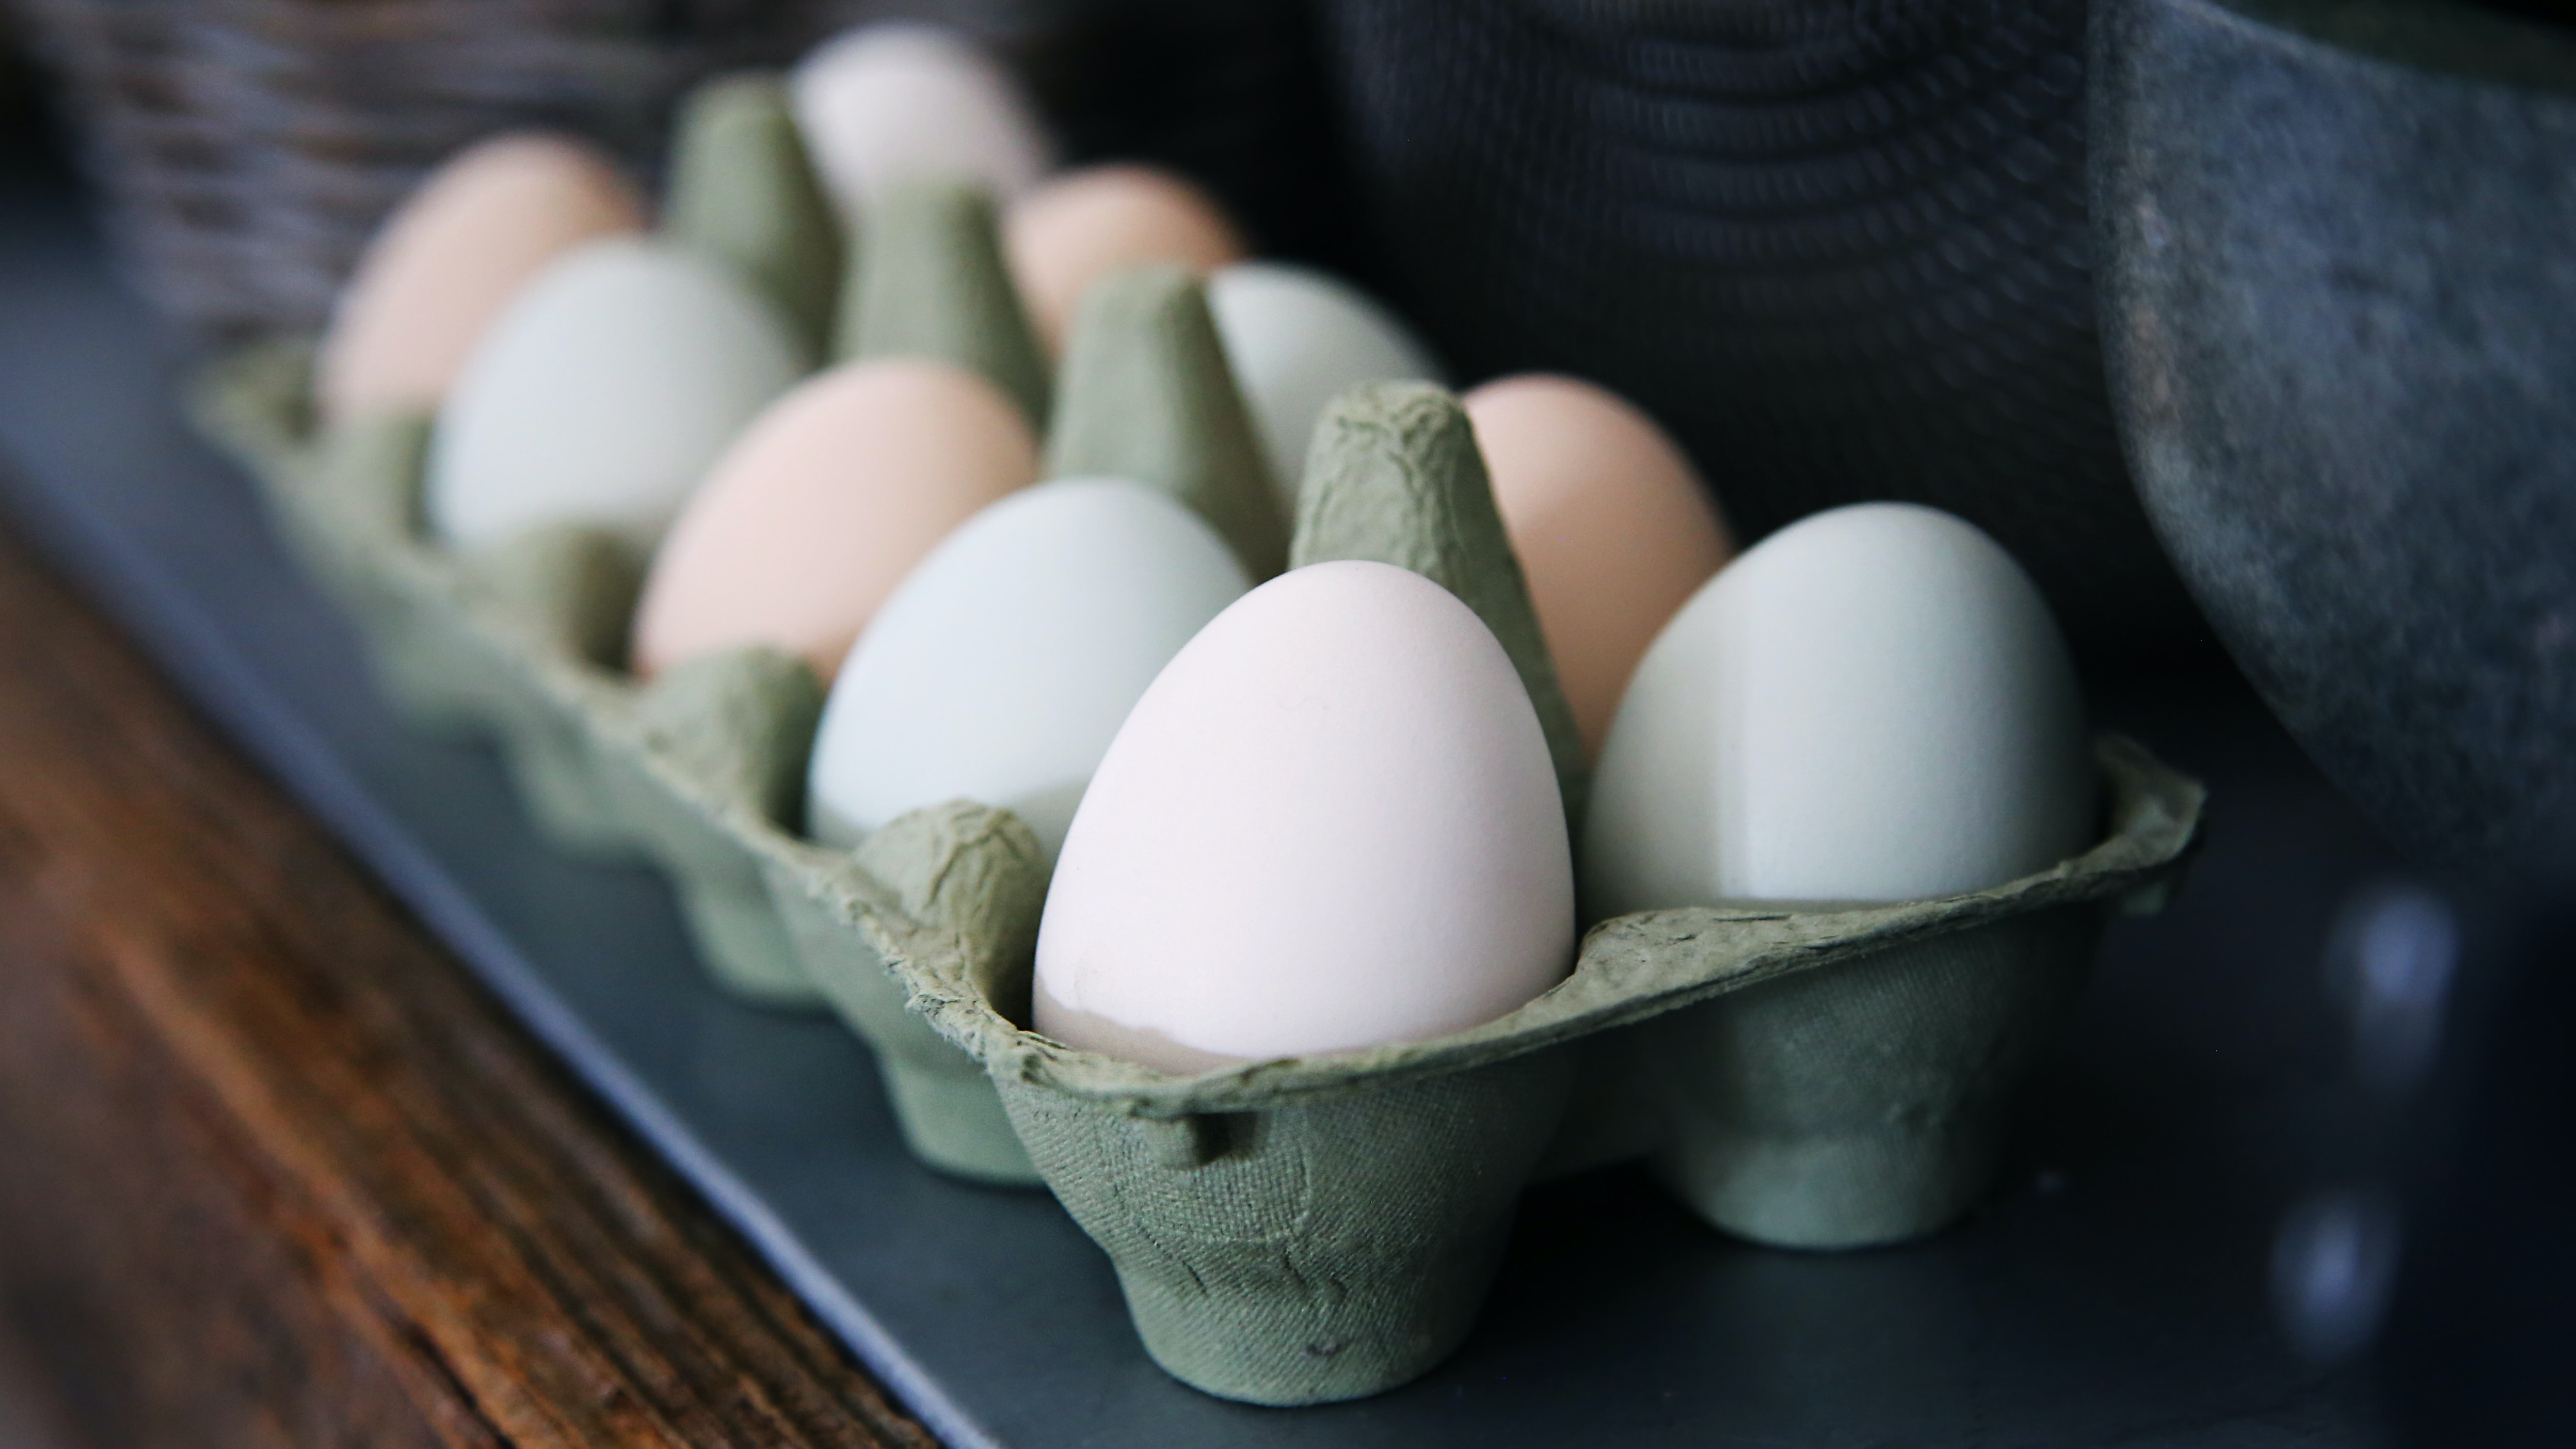 white and beige eggs on tray